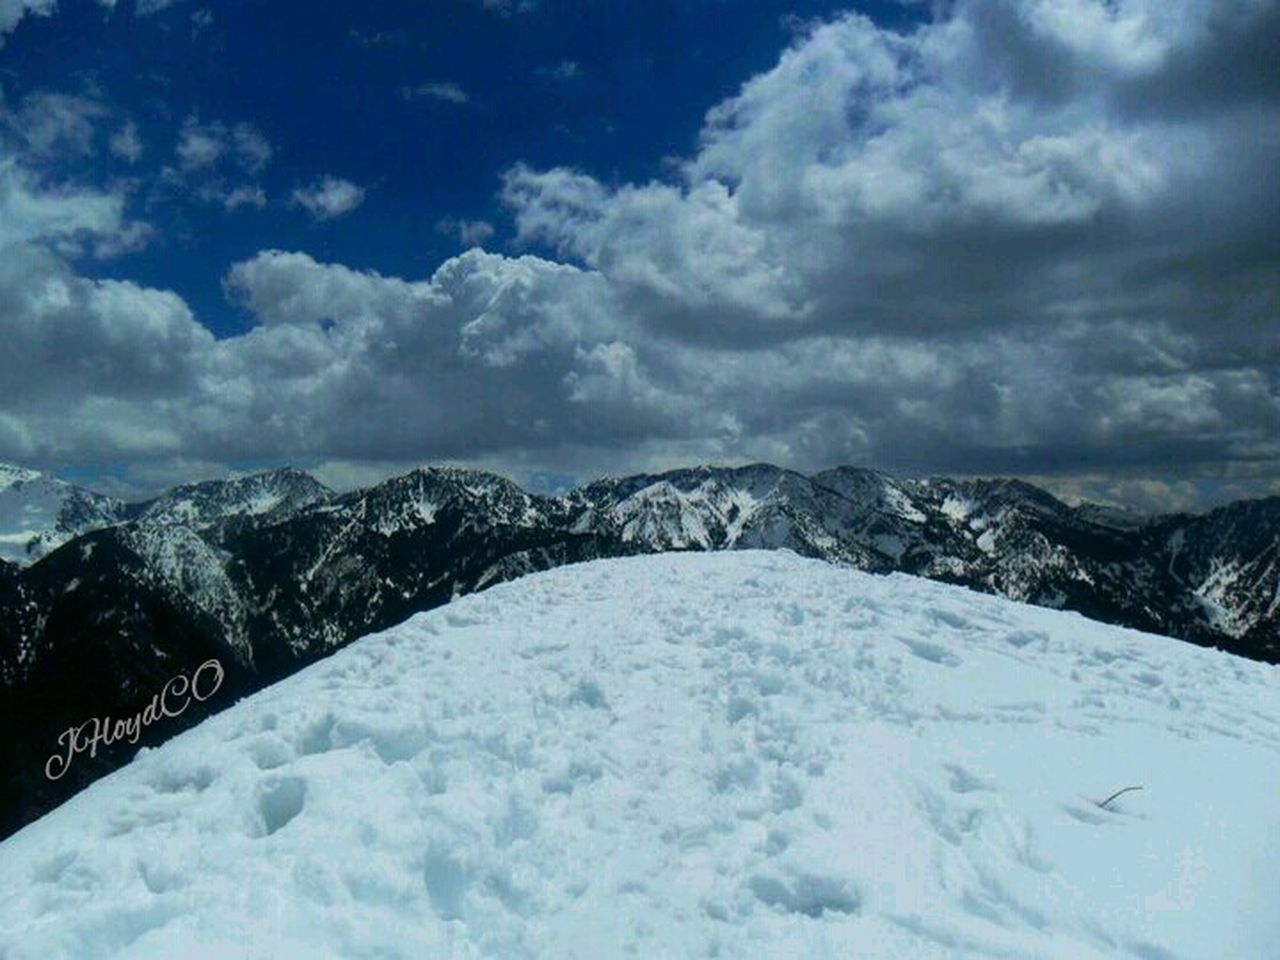 snow, cold temperature, winter, weather, nature, beauty in nature, cloud - sky, outdoors, no people, scenics, frozen, sky, day, landscape, mountain, snowdrift